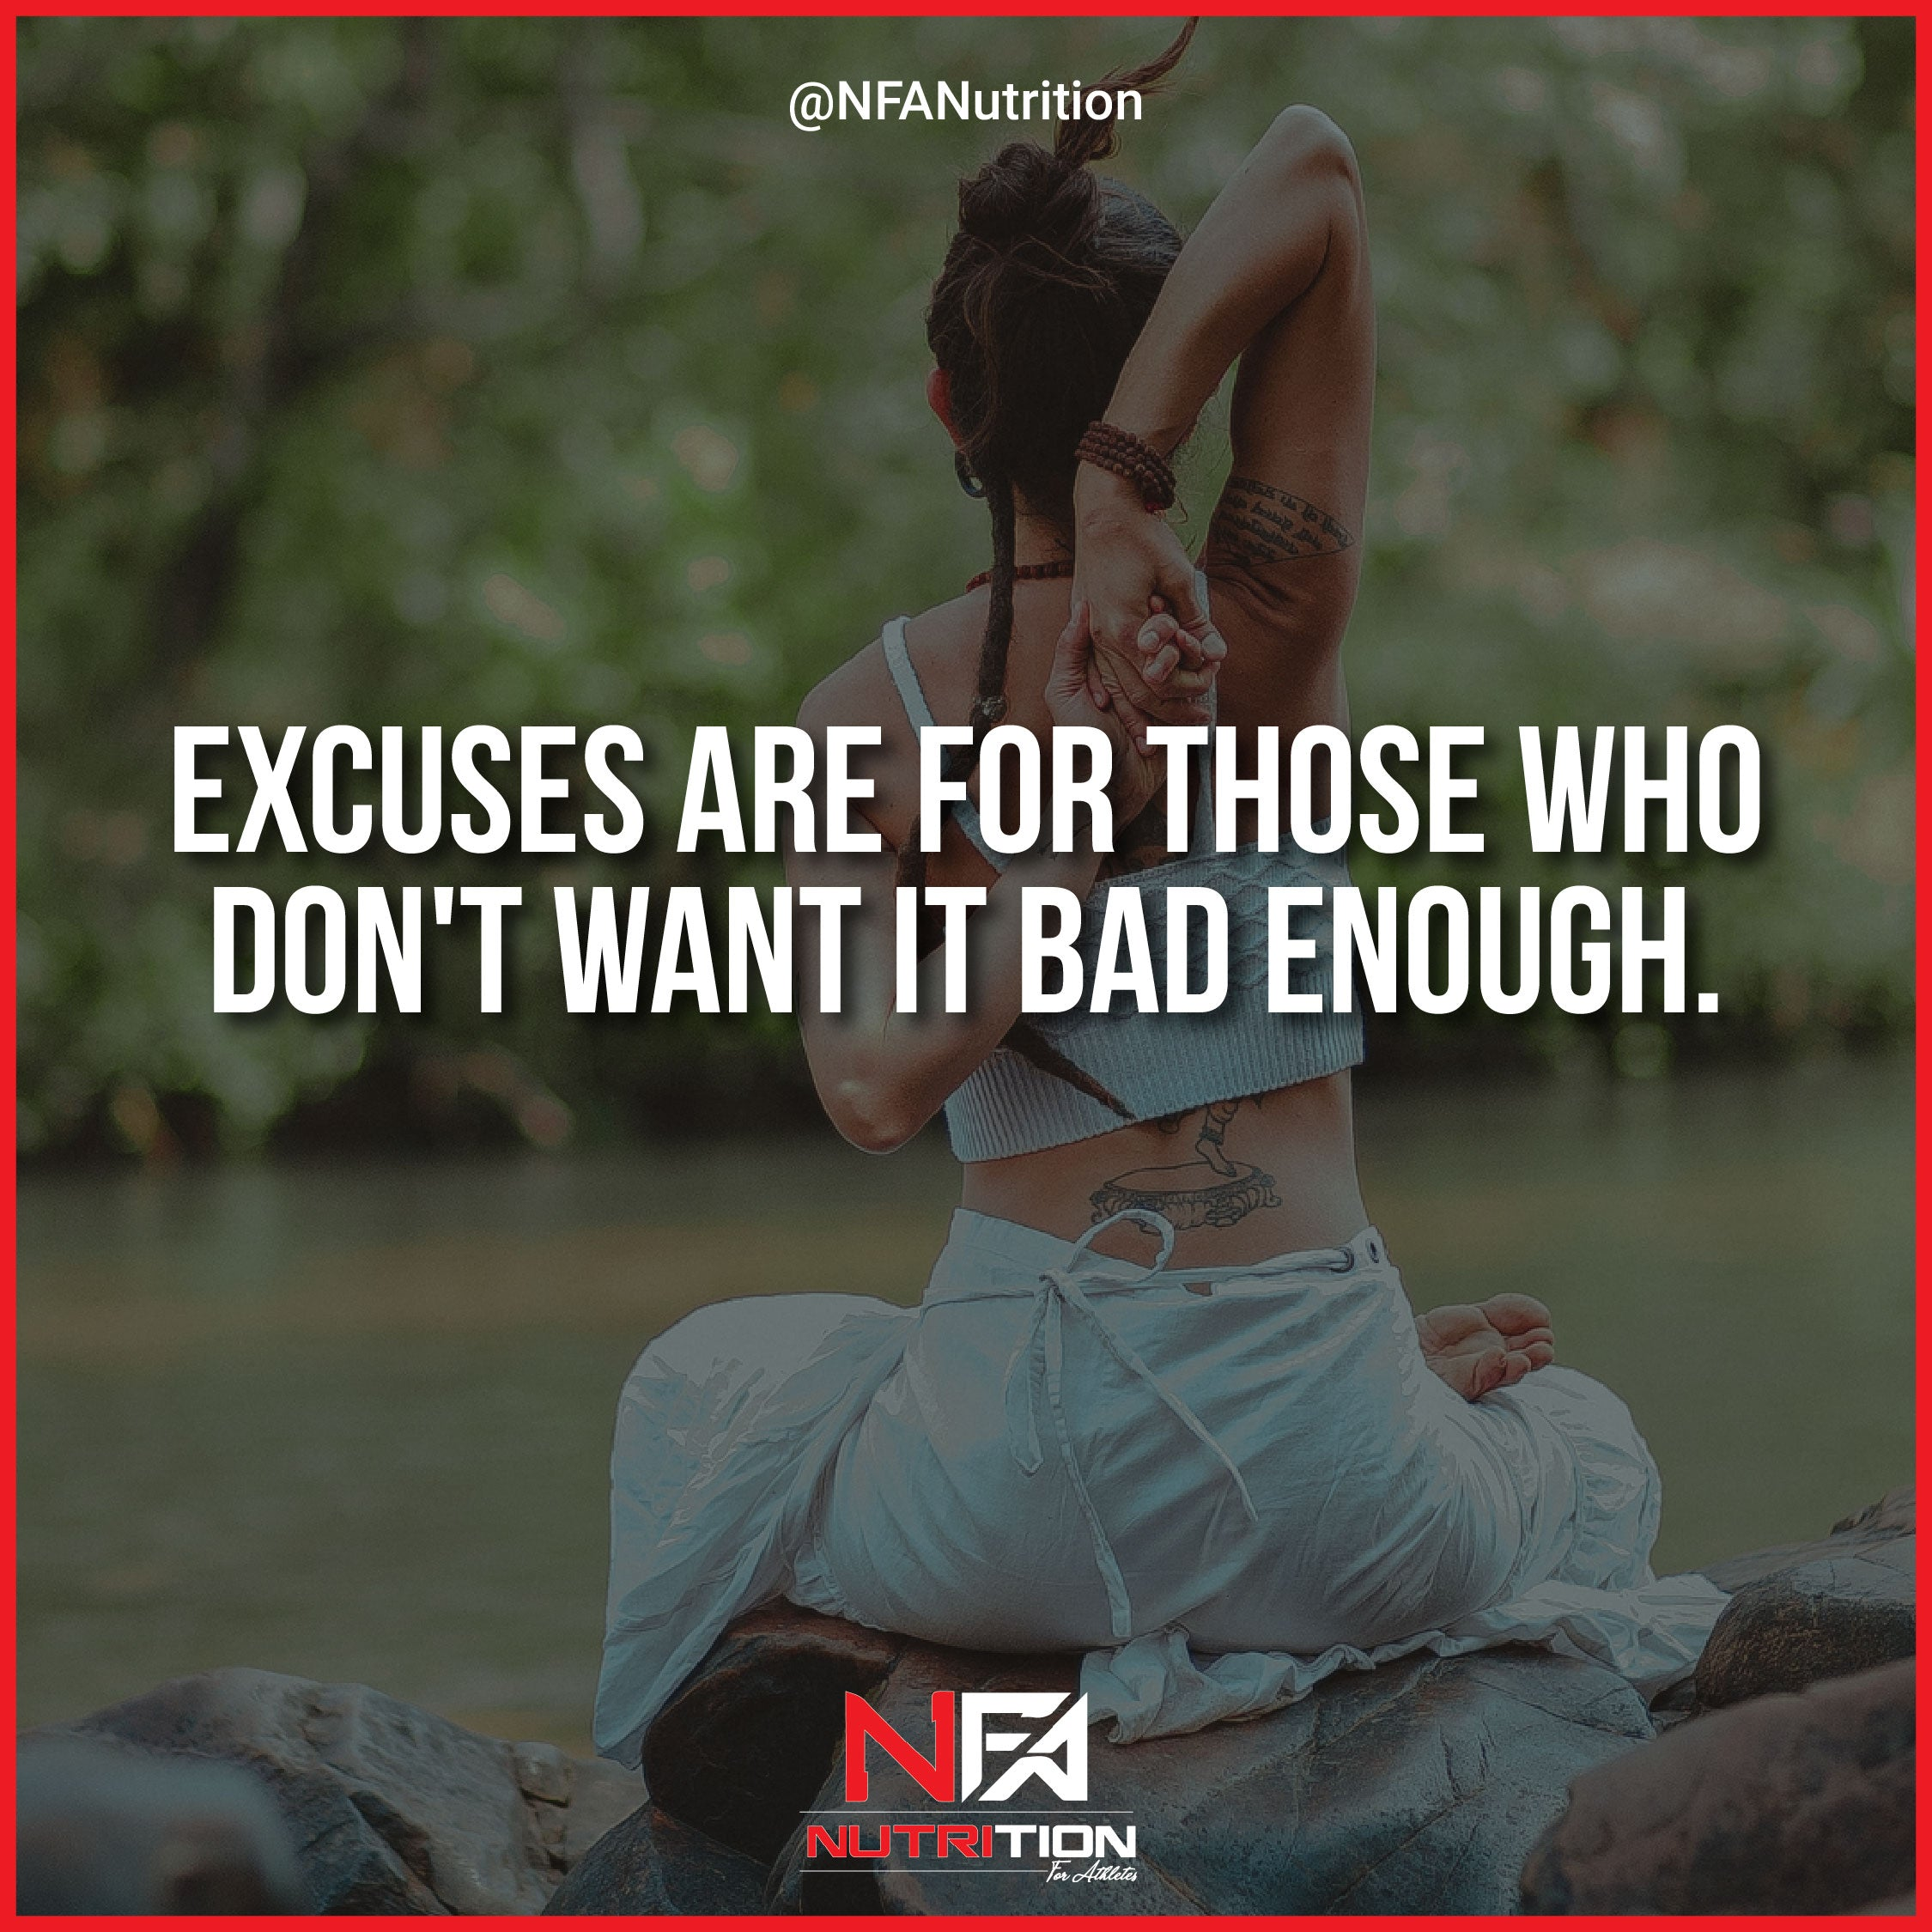 EXCUSES ARE FOR THOSE WHO DON'T WANT IT BAD ENOUGH!